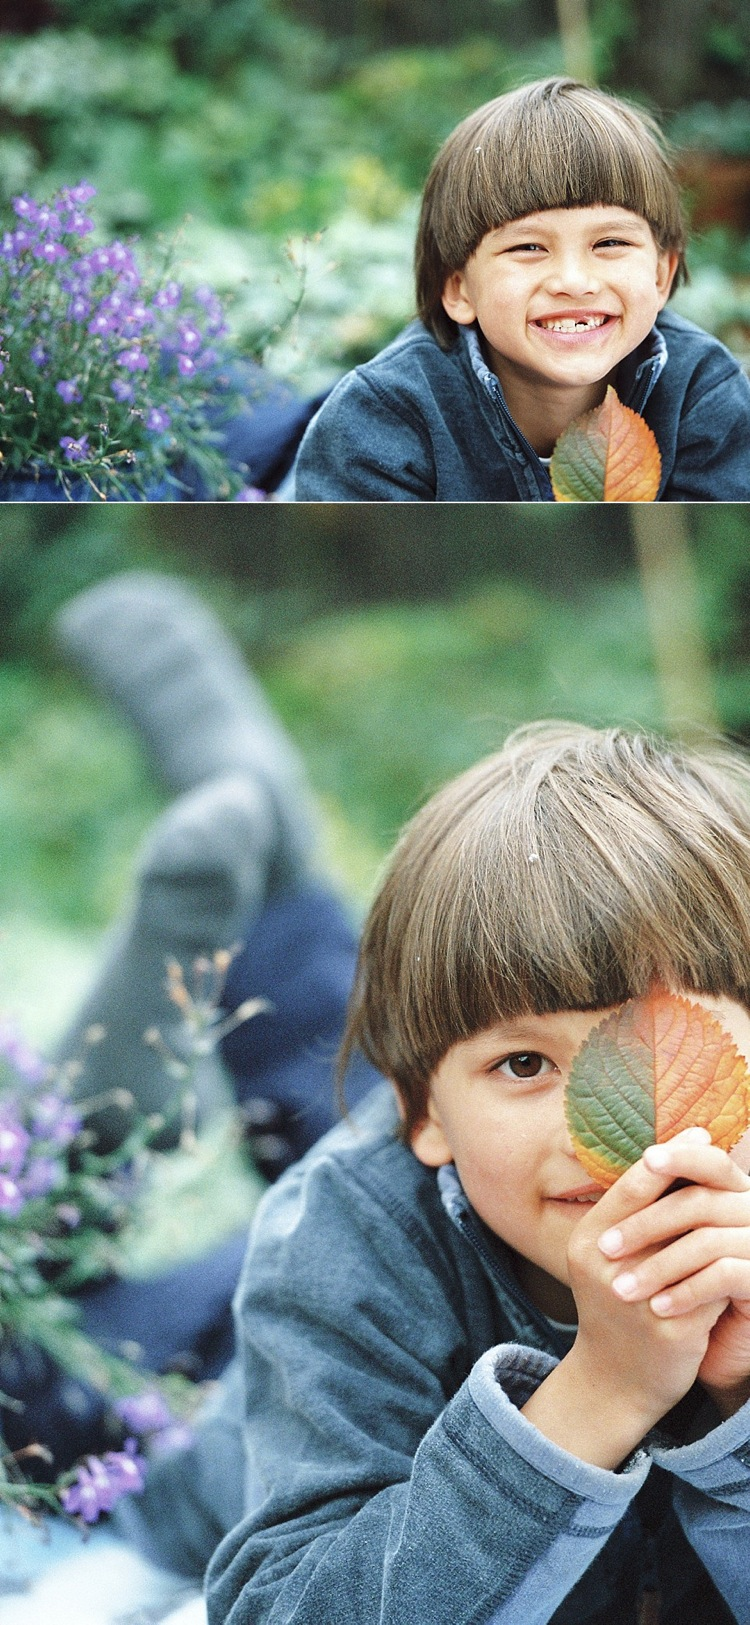 camping photoshoot film kodak portra 400 london lily sawyer photo